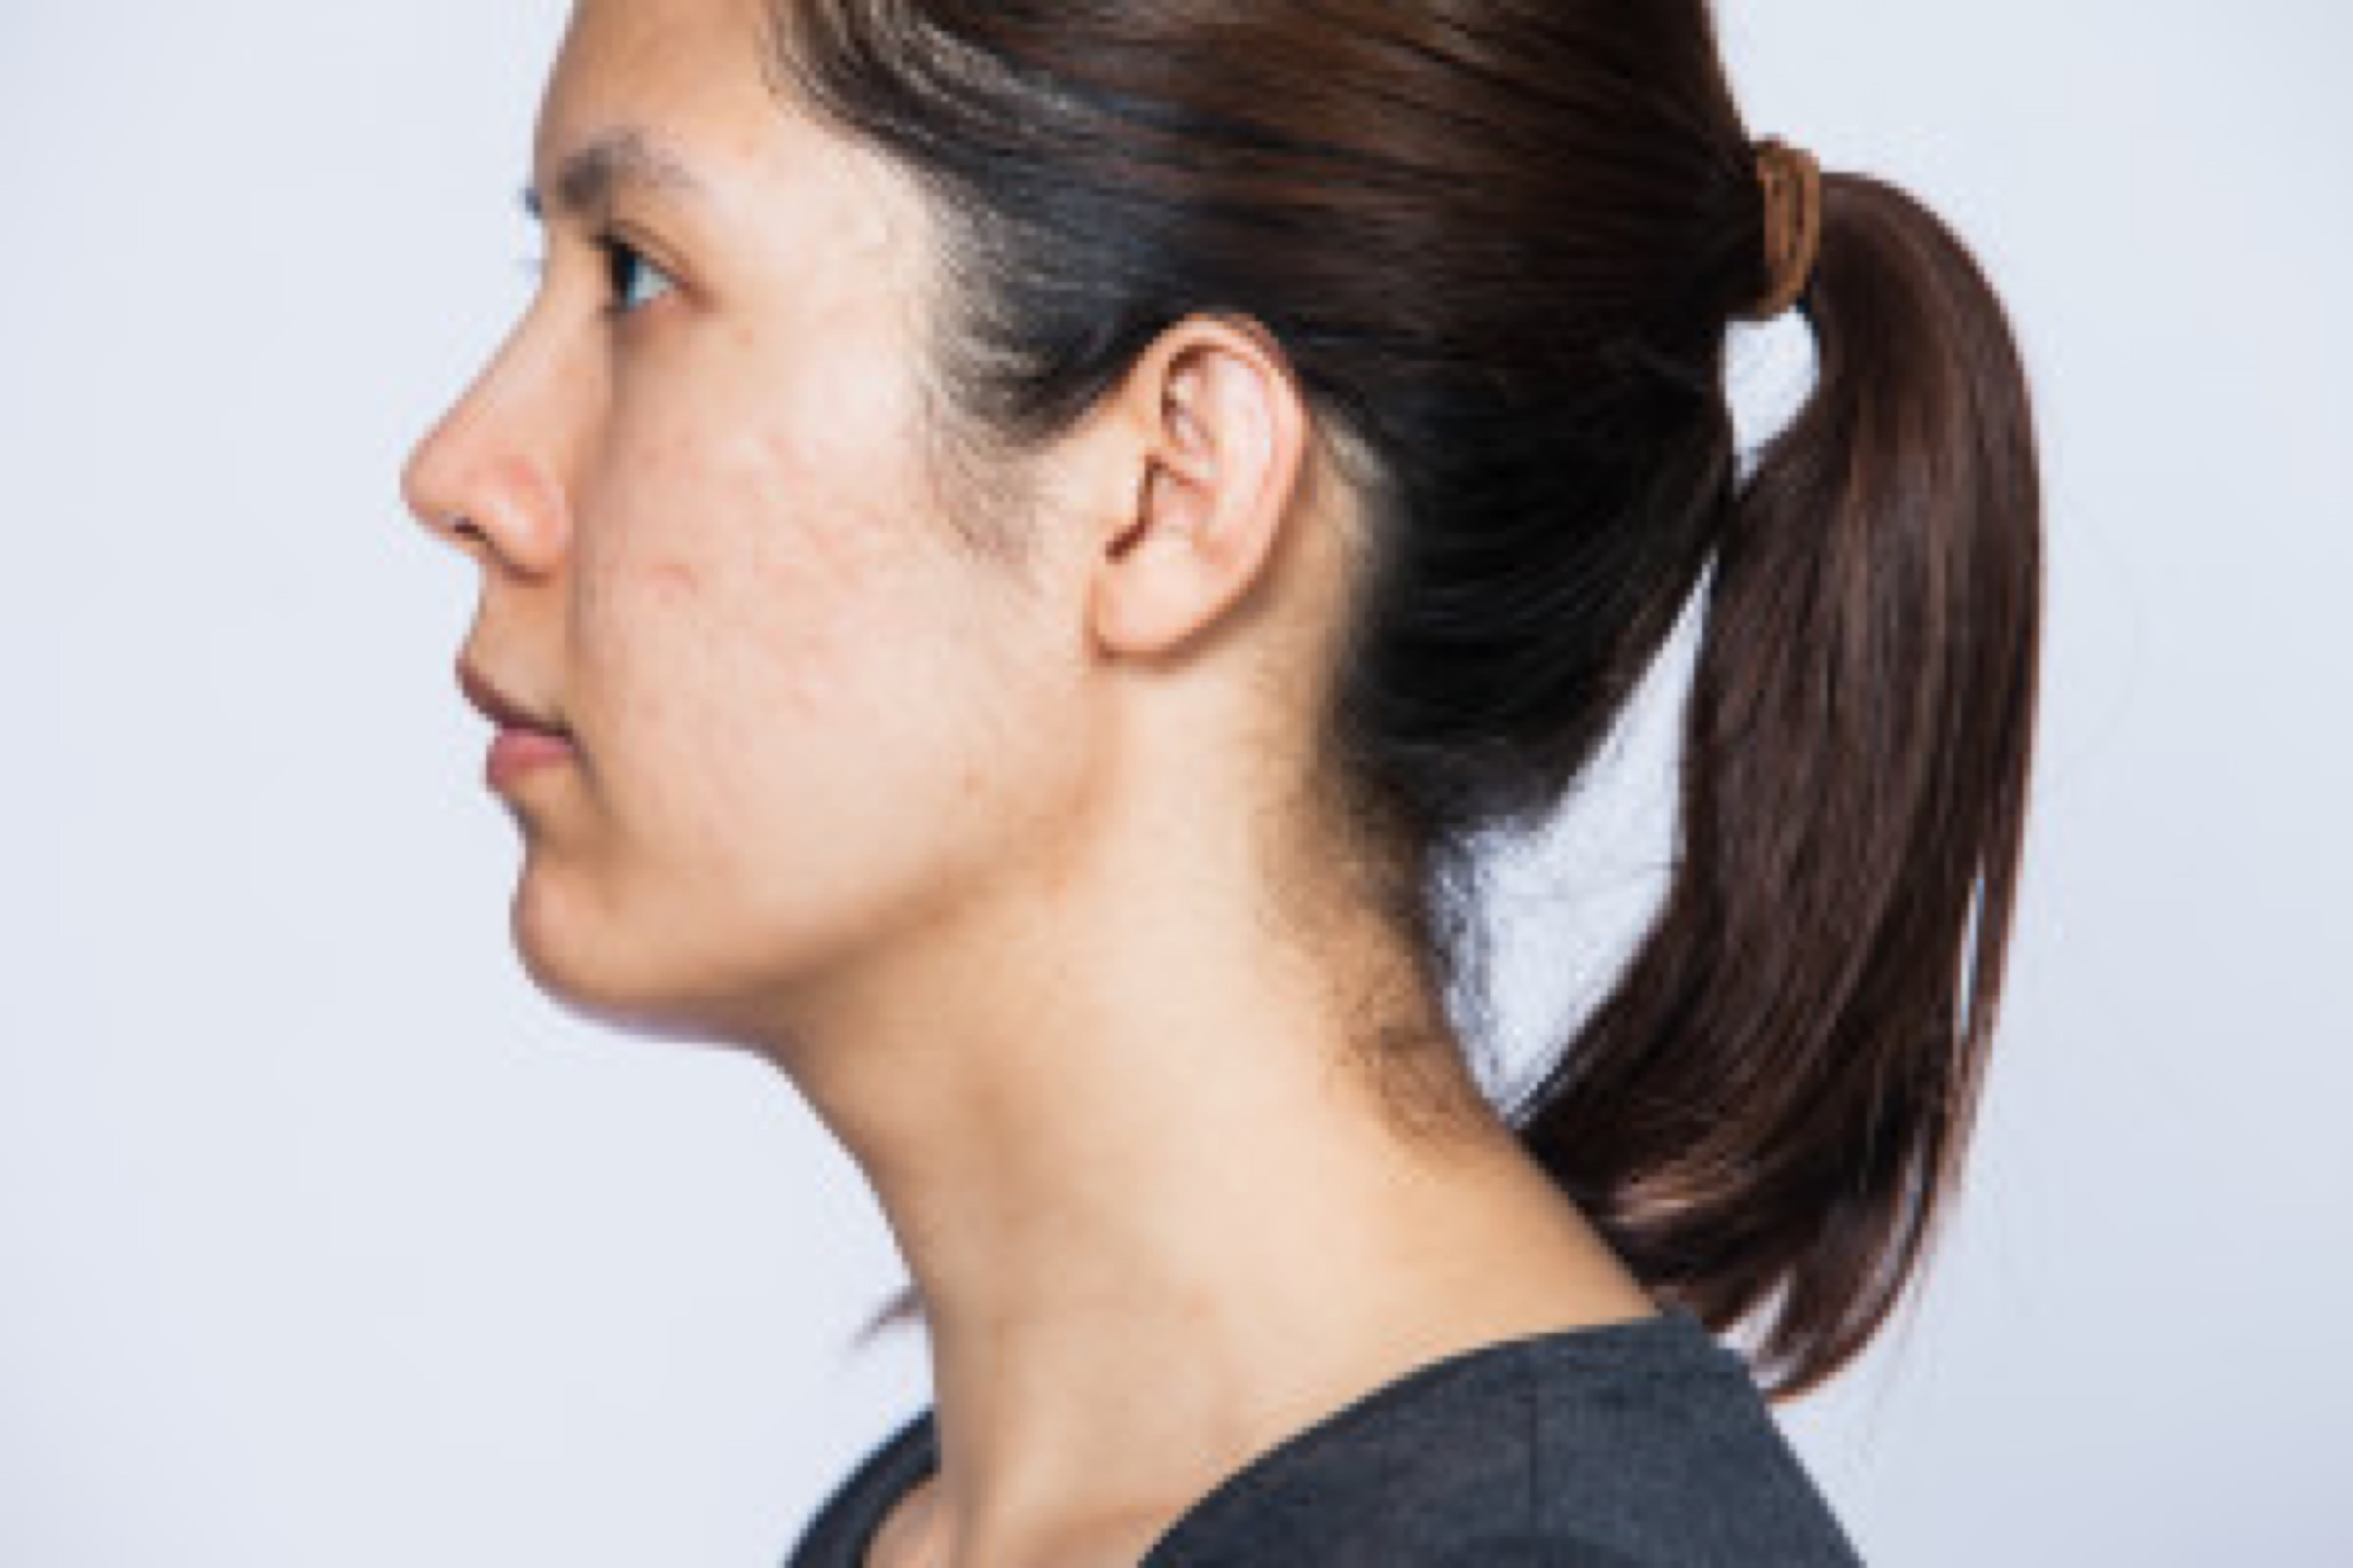 face scar from acne